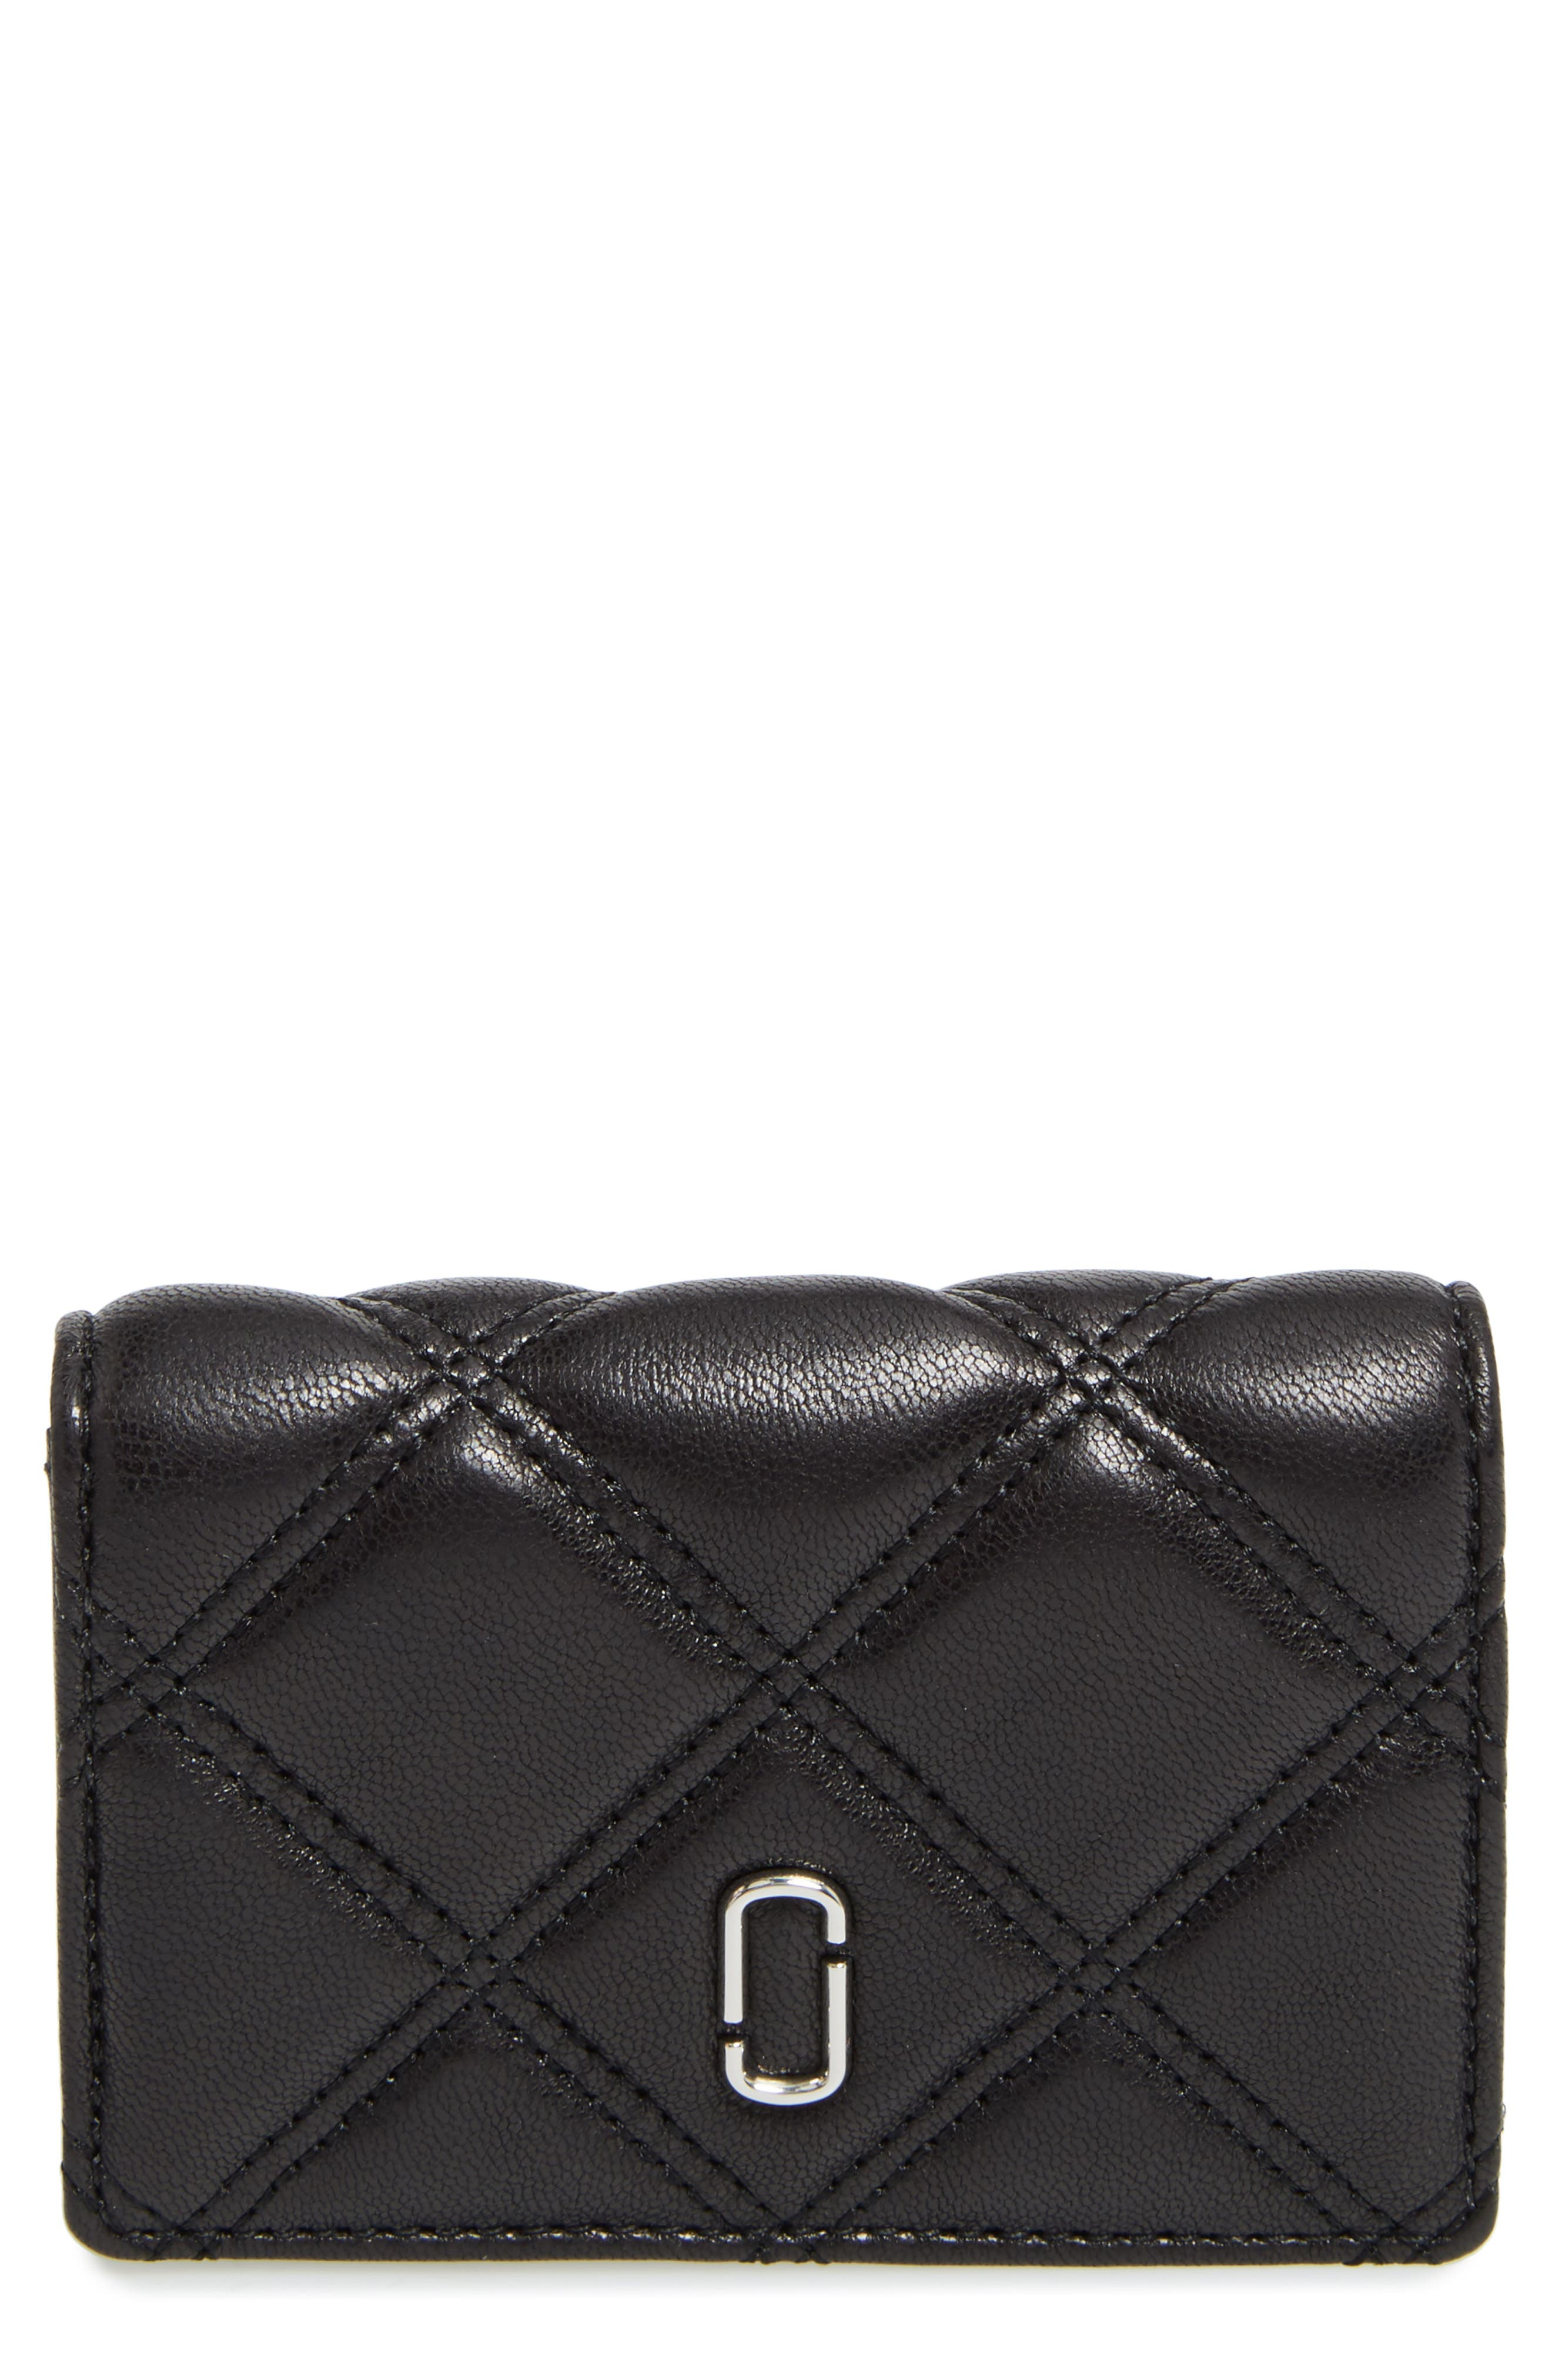 Quilted French Wallet,                         Main,                         color, Black